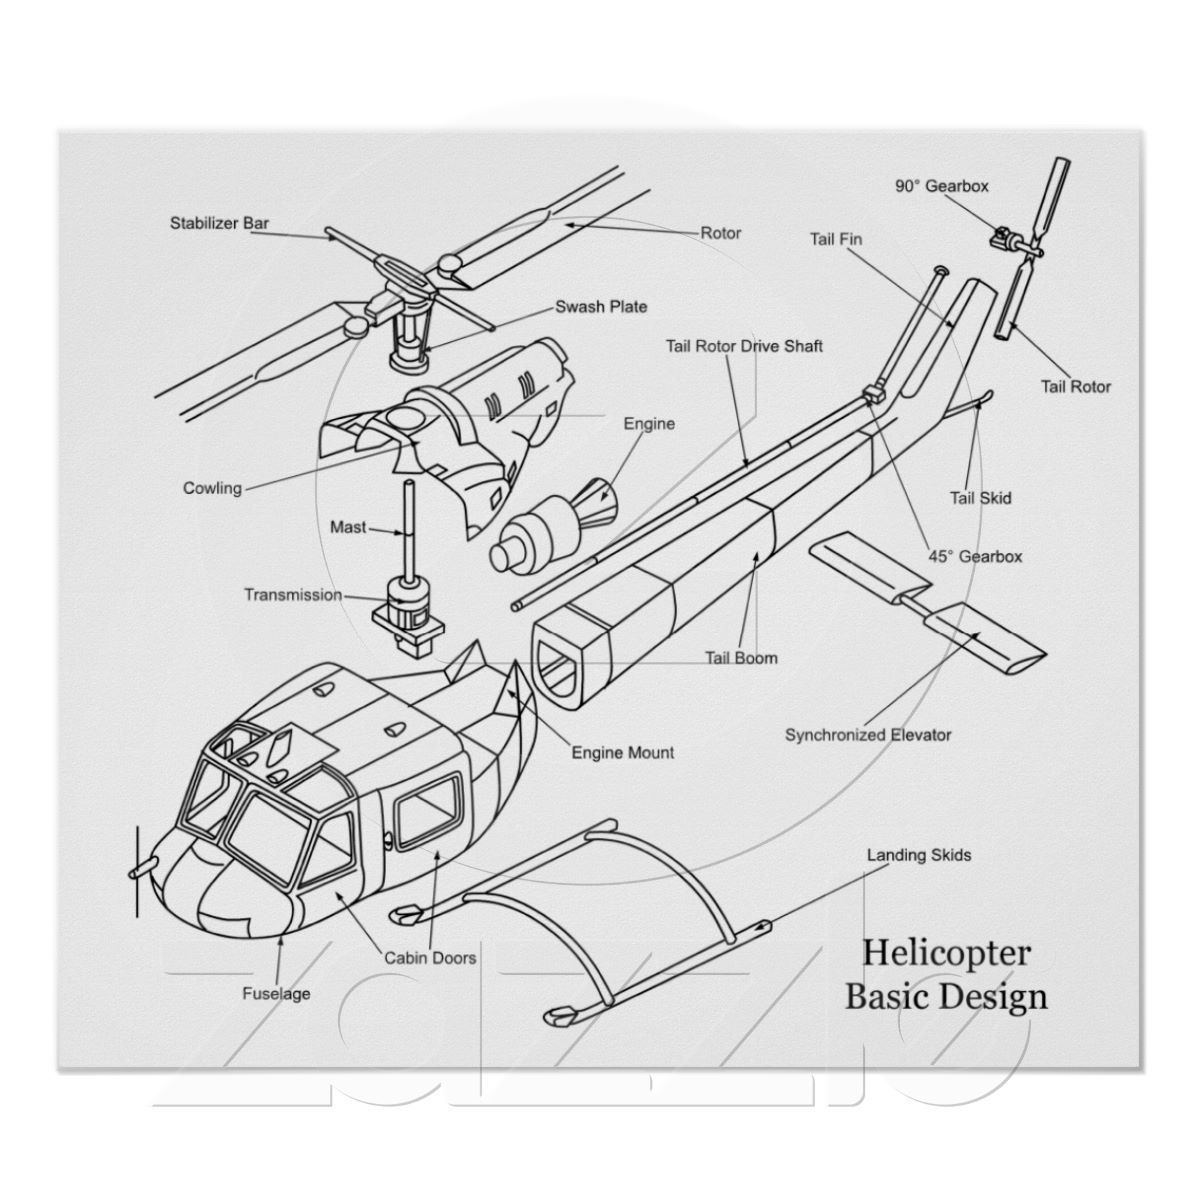 2f193326f9db2acb09d398cca3076c4f Helicopter Schematic Diagram on predator drone diagram, aircraft wiring diagram, airplane passenger diagram, helicopter engine diagram, airplane parts diagram, helicopter parts diagram, engine 2 stroke carb diagram, helicopter assembly diagram, helicopter electrical wiring diagram,